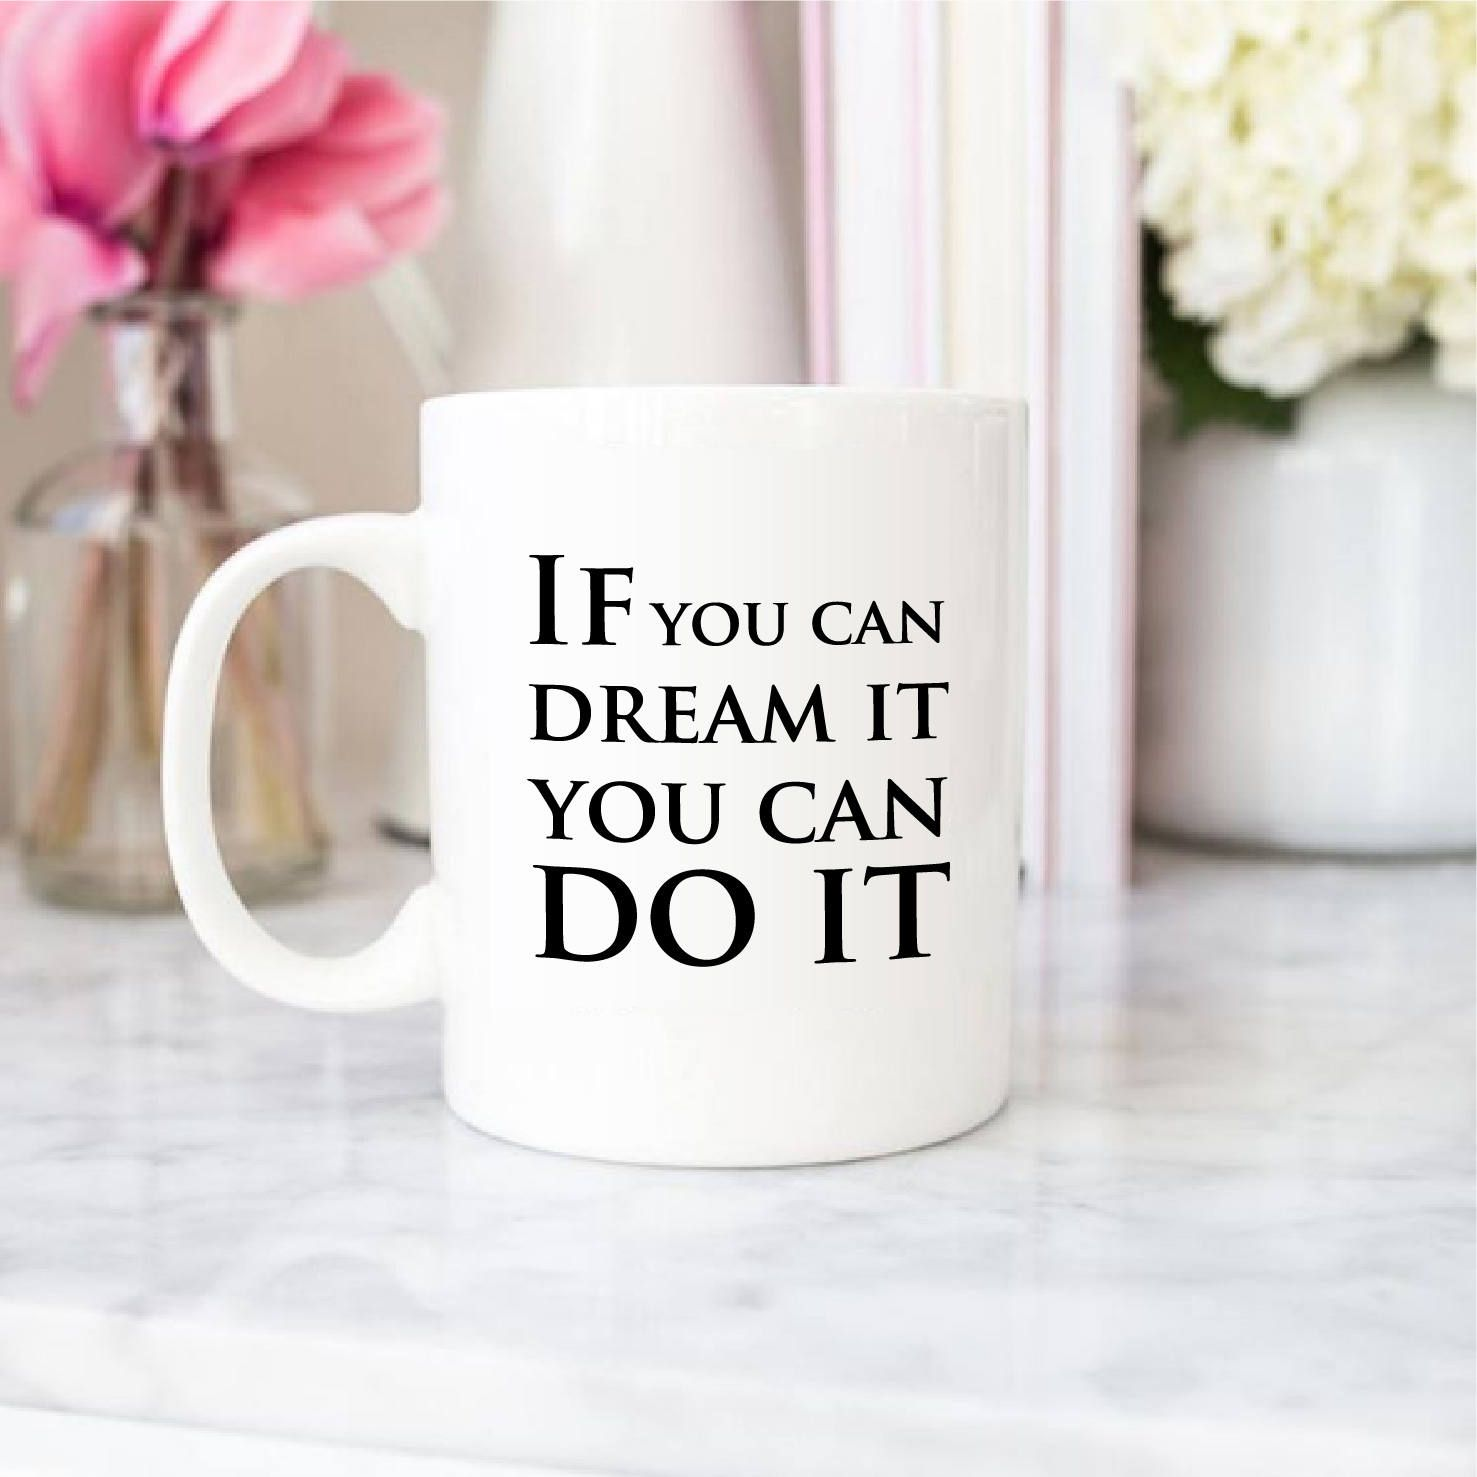 Inspirational Coffee Mug Quote Motivational Coffee Cup Saying If You Can Dream It You Can Do It Morning Motivation Cup Coffee Mug Quotes Mugs Personalized Mugs